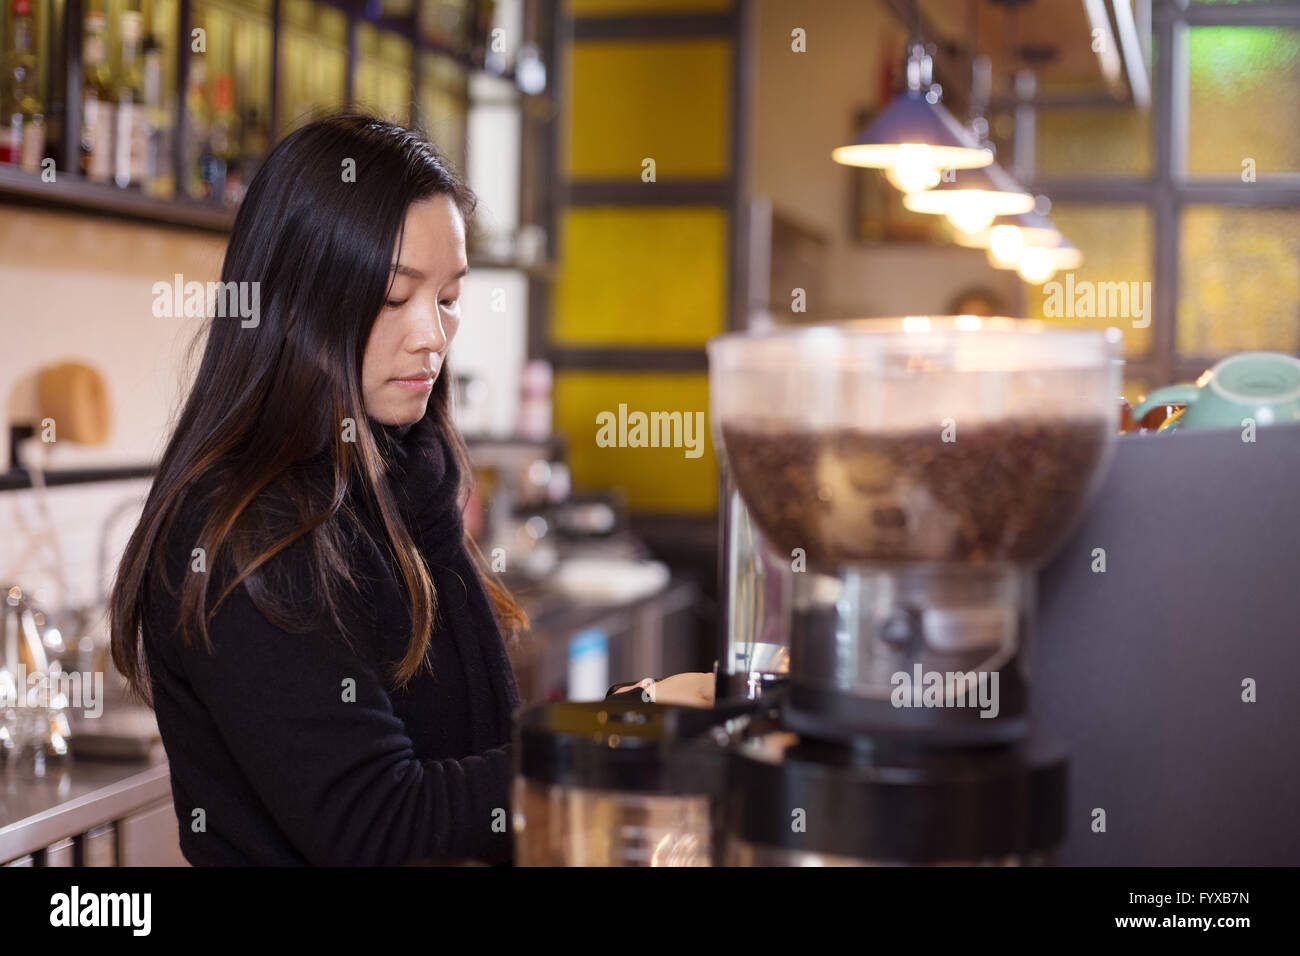 people make coffee in cafe - Stock Image